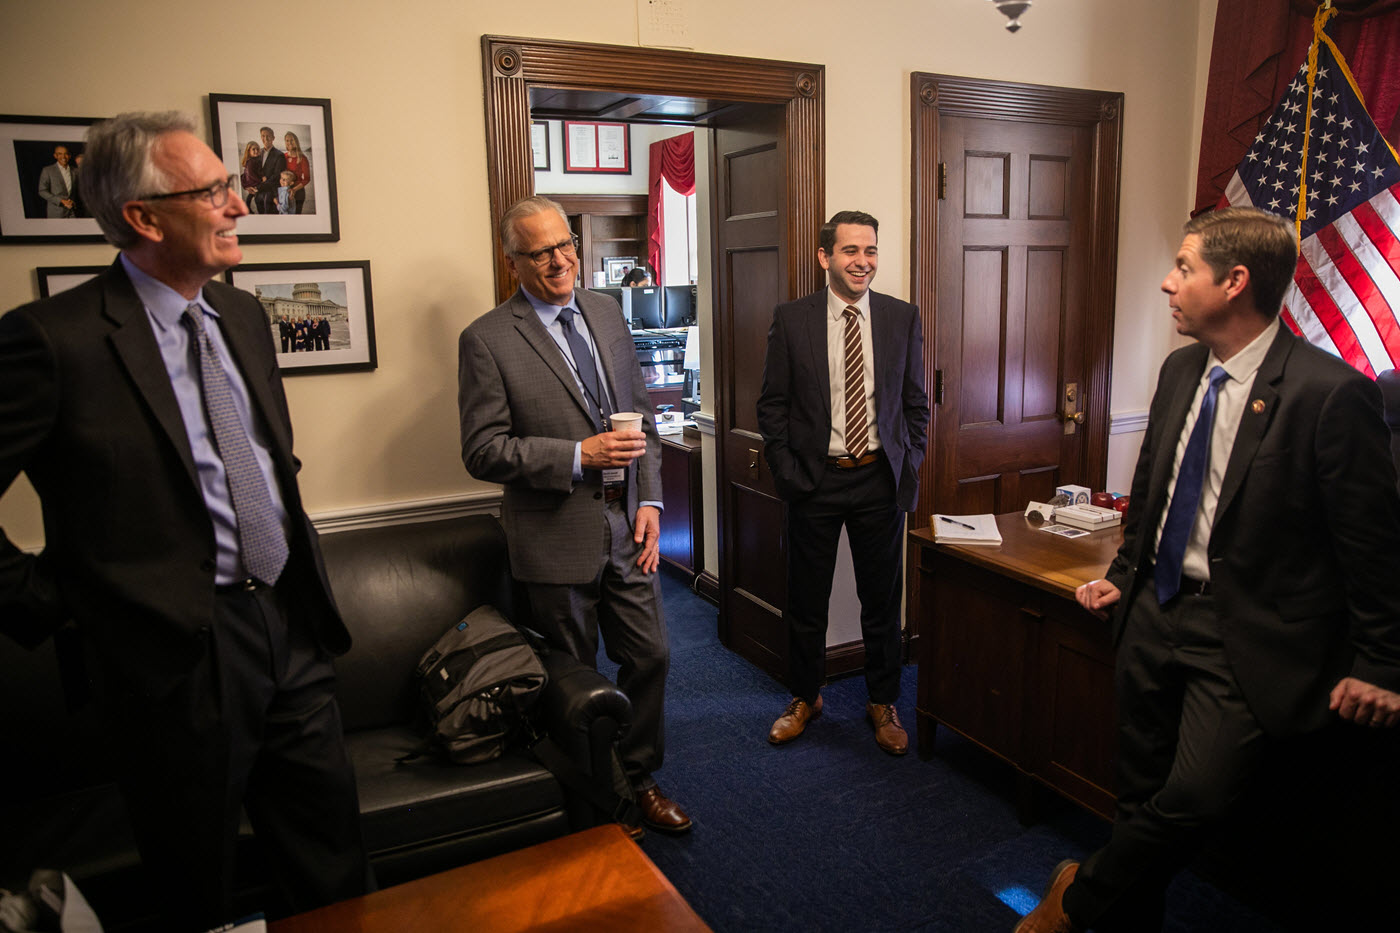 Four men in suits standing in an office laughing and talking.